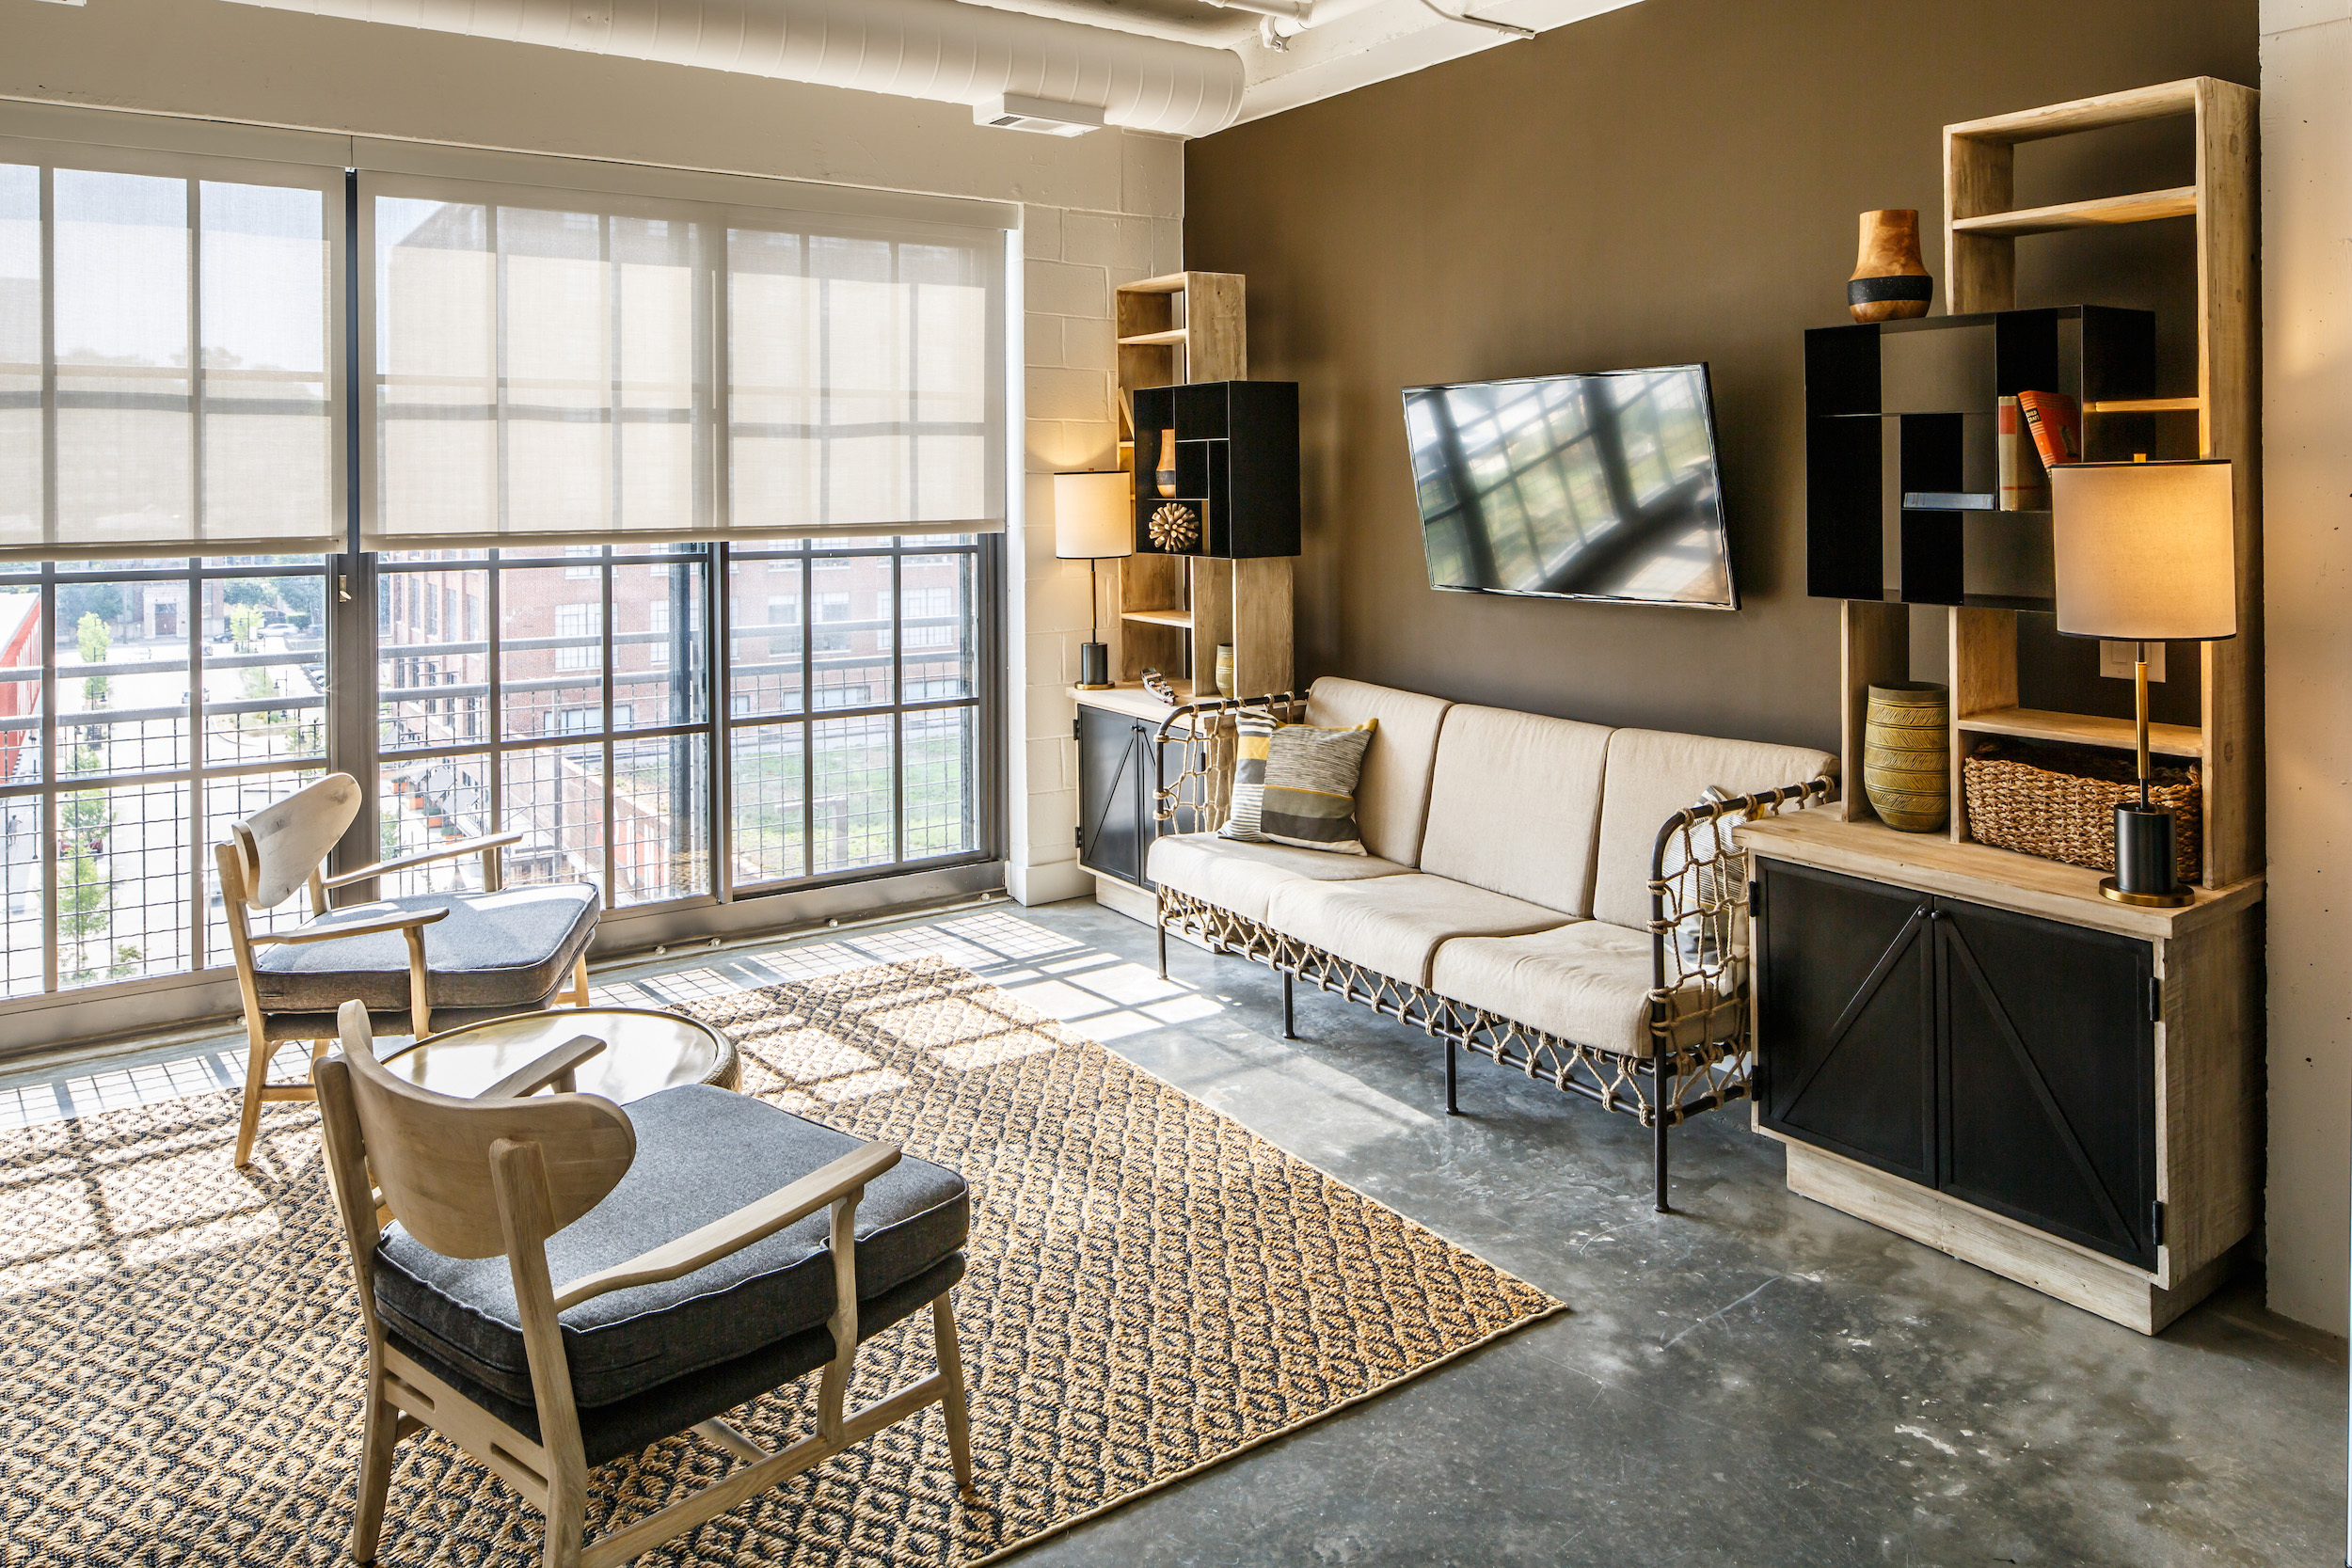 The Flats at Ponce City Market guest suite living area interior with view of building and green roof outside windows